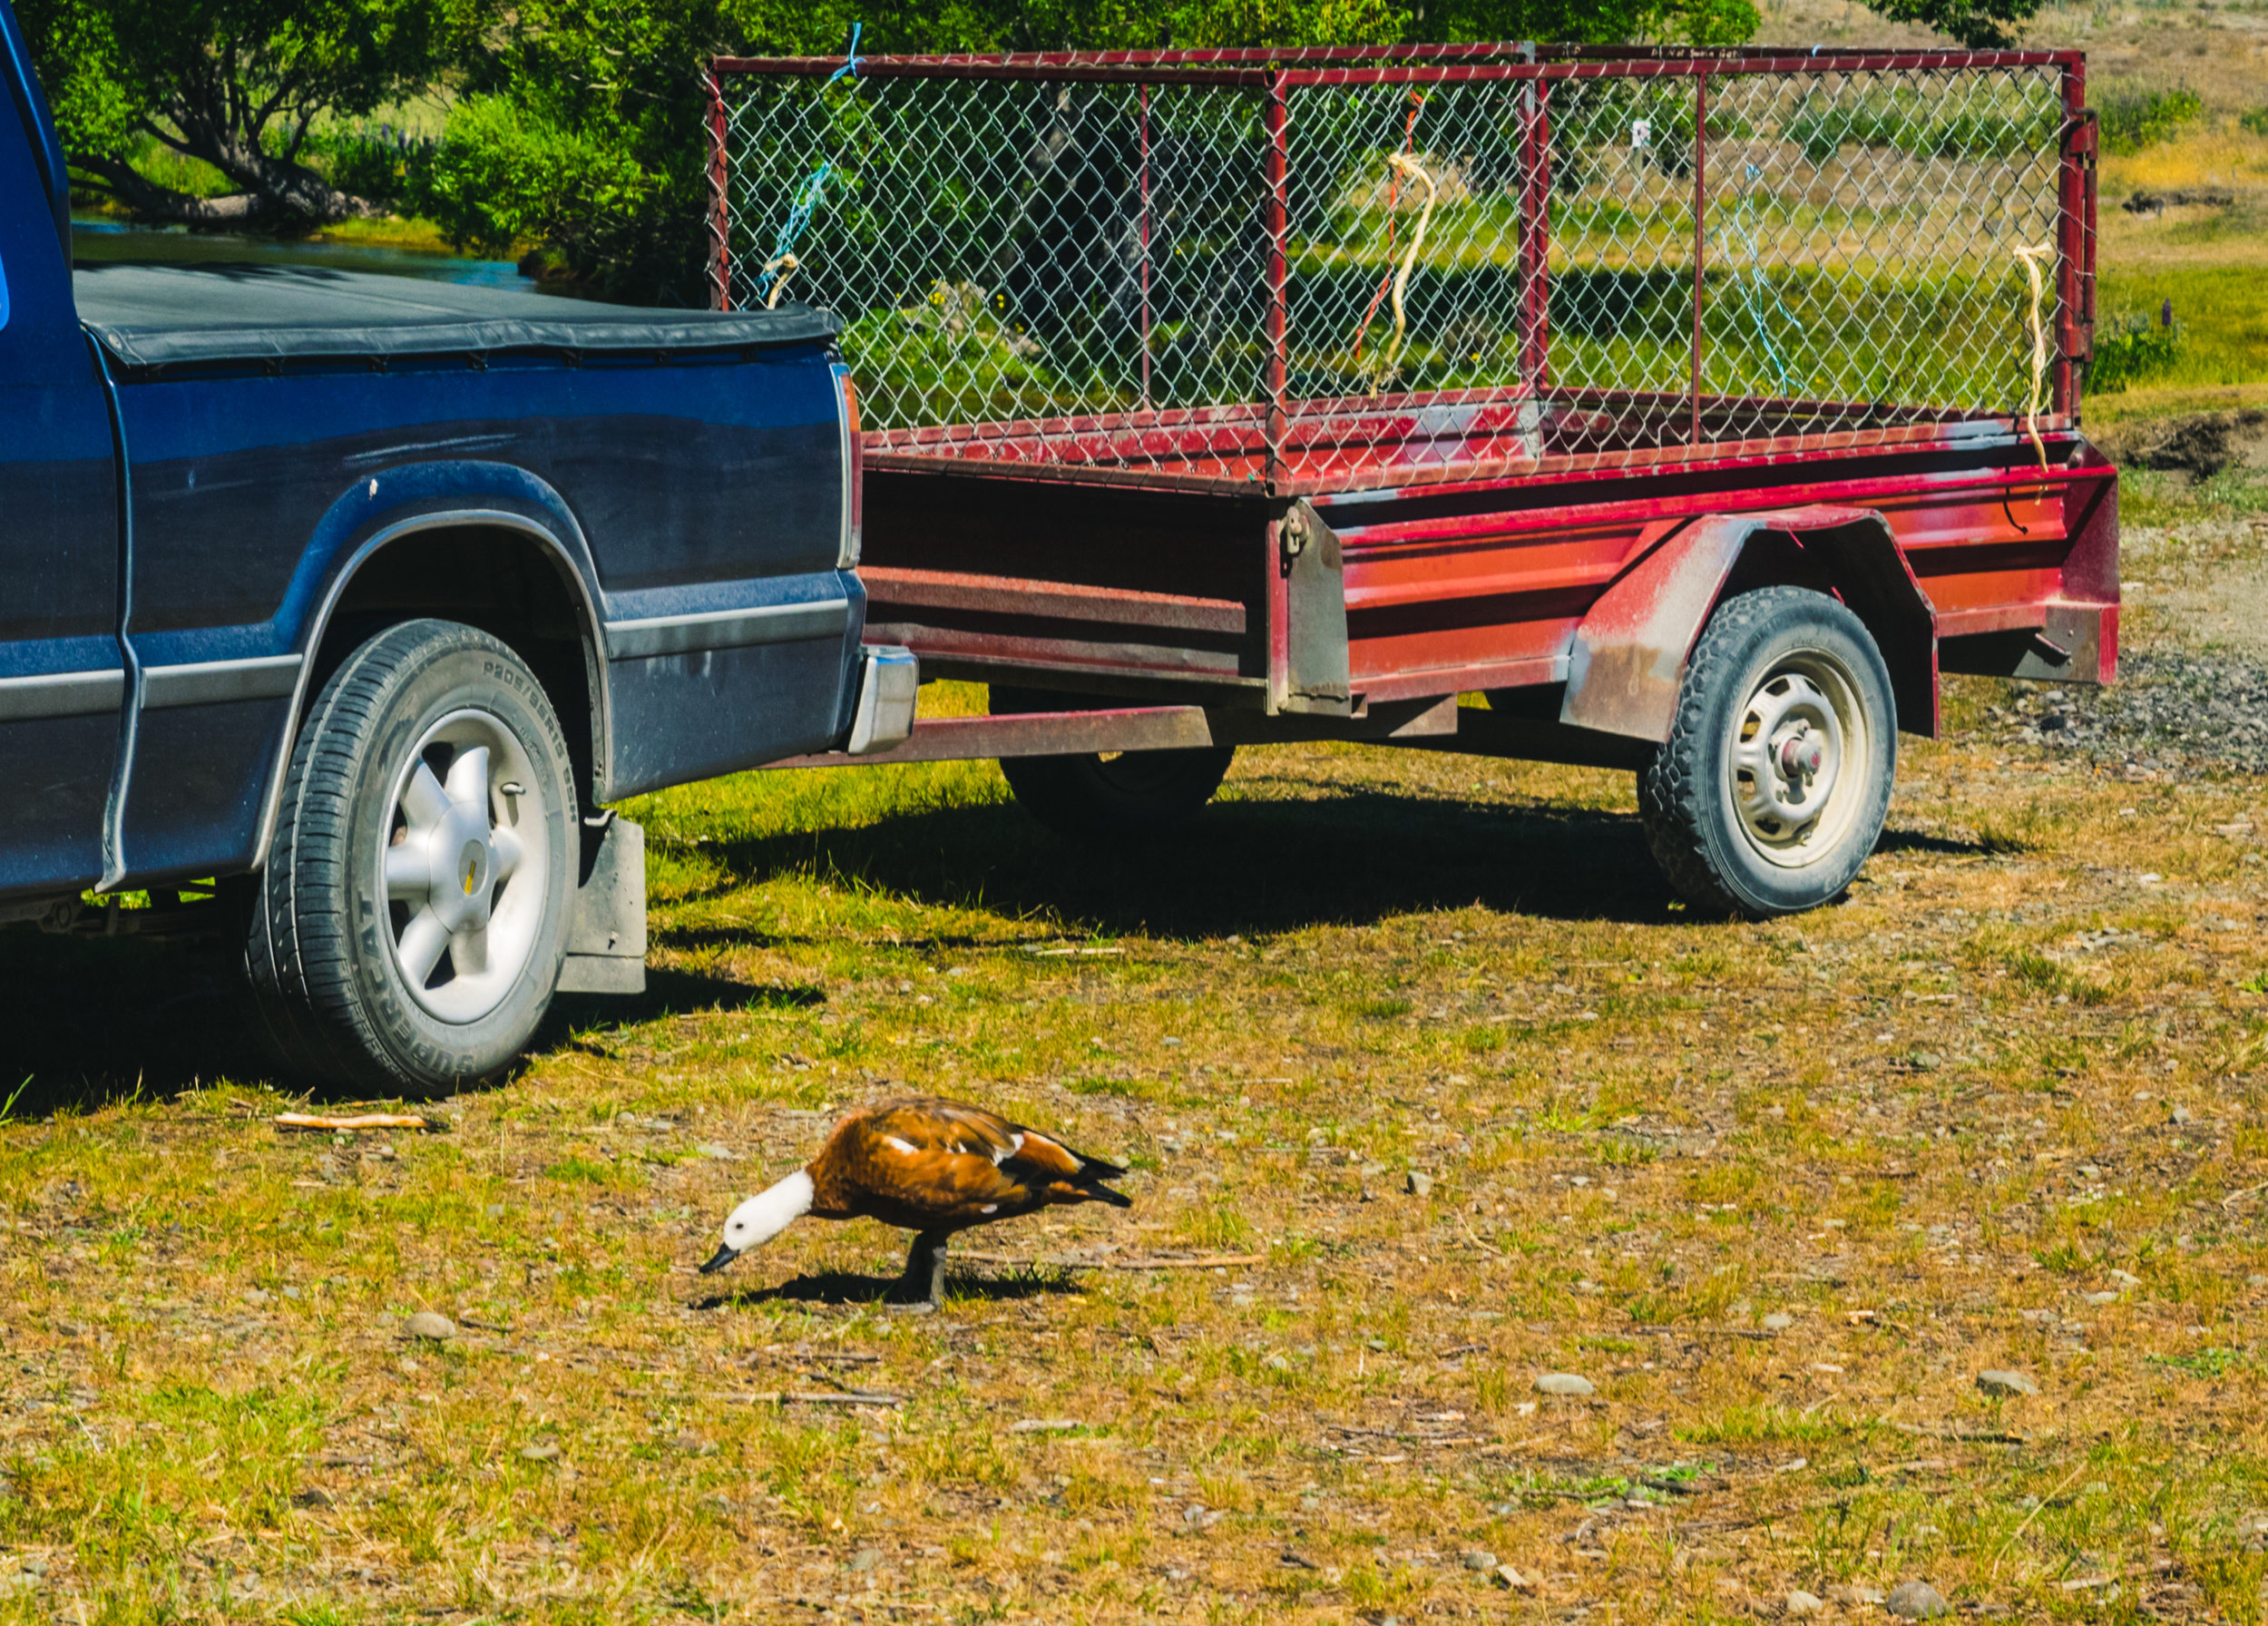 At the campground (which got completely full BTW), the campground host had this unique duck following him around. apparently one day he showed up, and he started feeding him, and the duck hasn't left his side. He squacks people away if they get too close to him! The guy was even petting him.